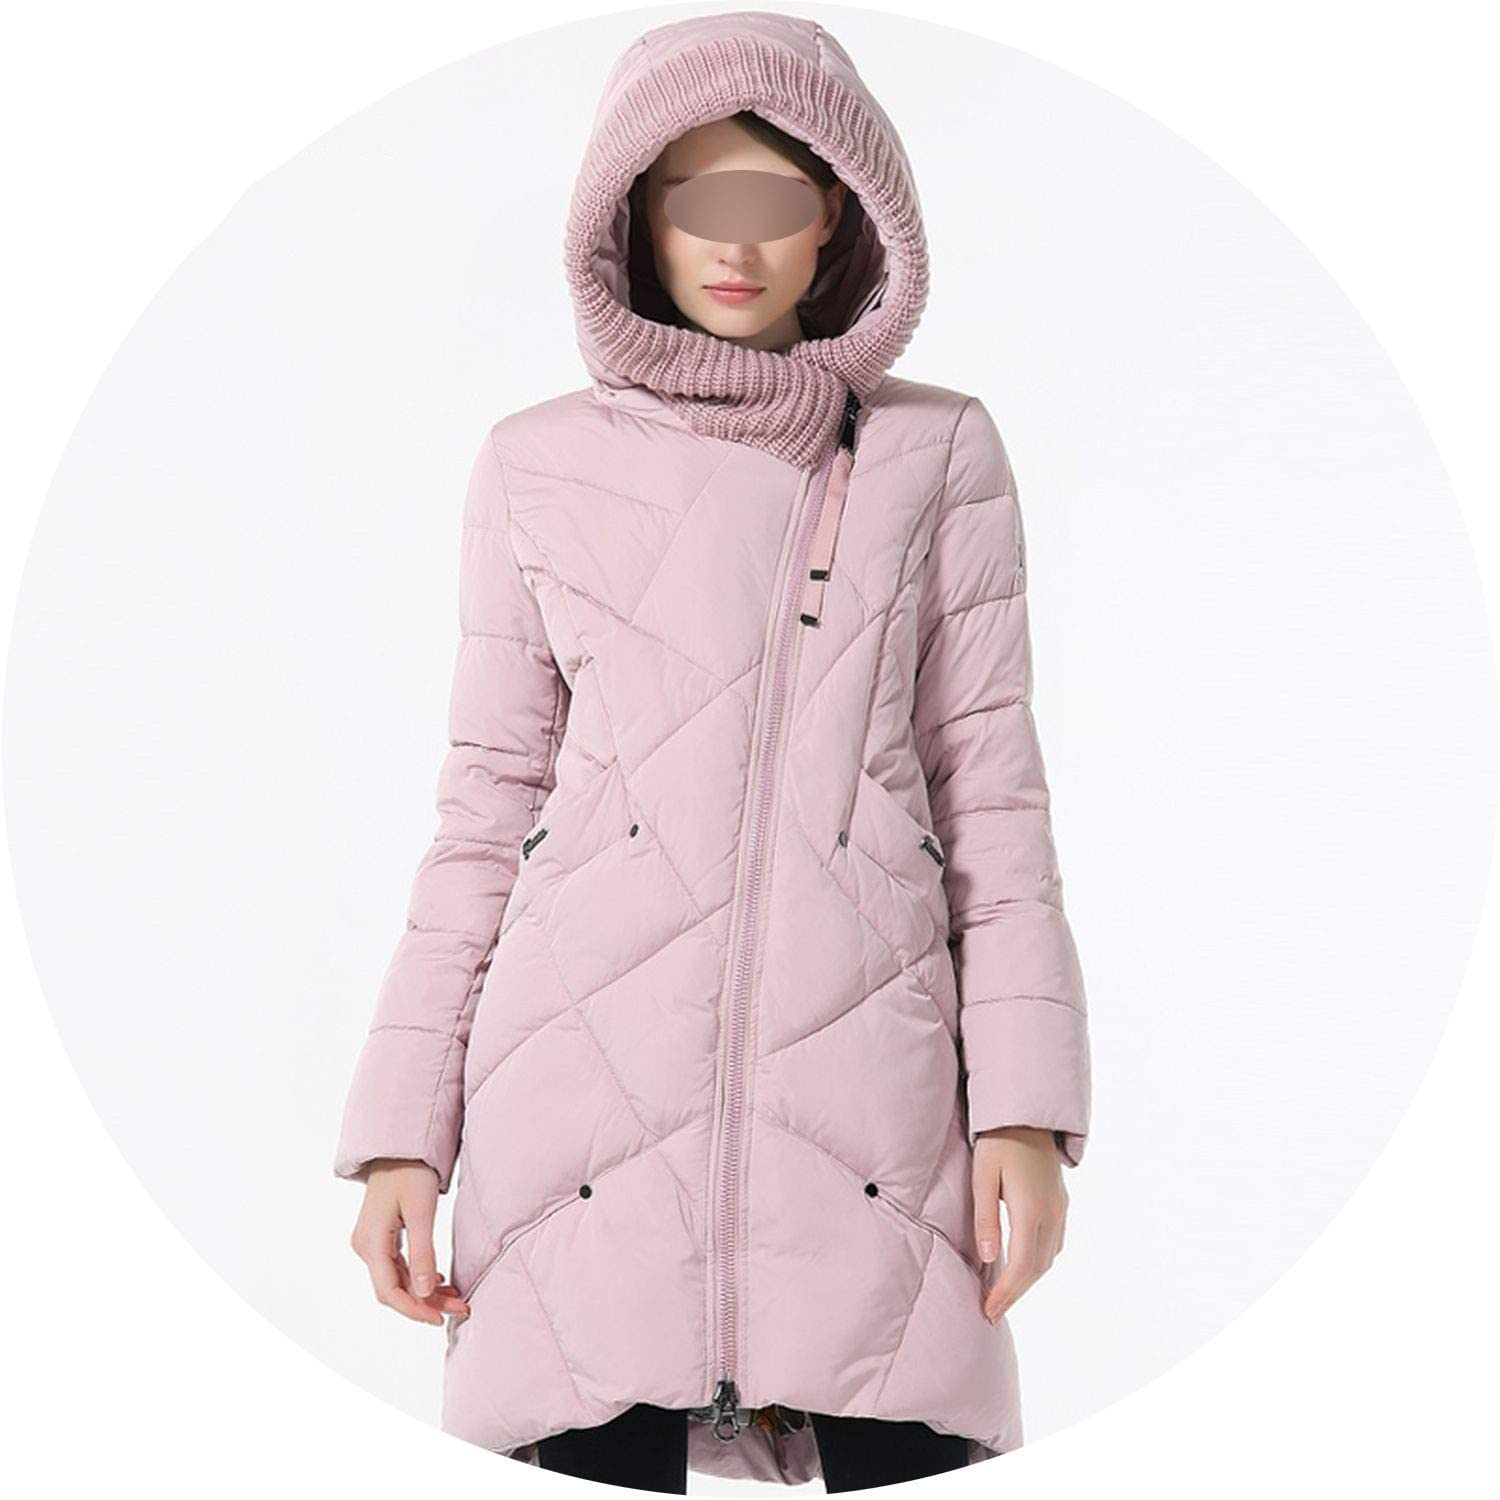 Be fearless New Winter Collection Brand Fashion Thick Women Winter Bio Down Jackets Hooded Women Parkas Coats